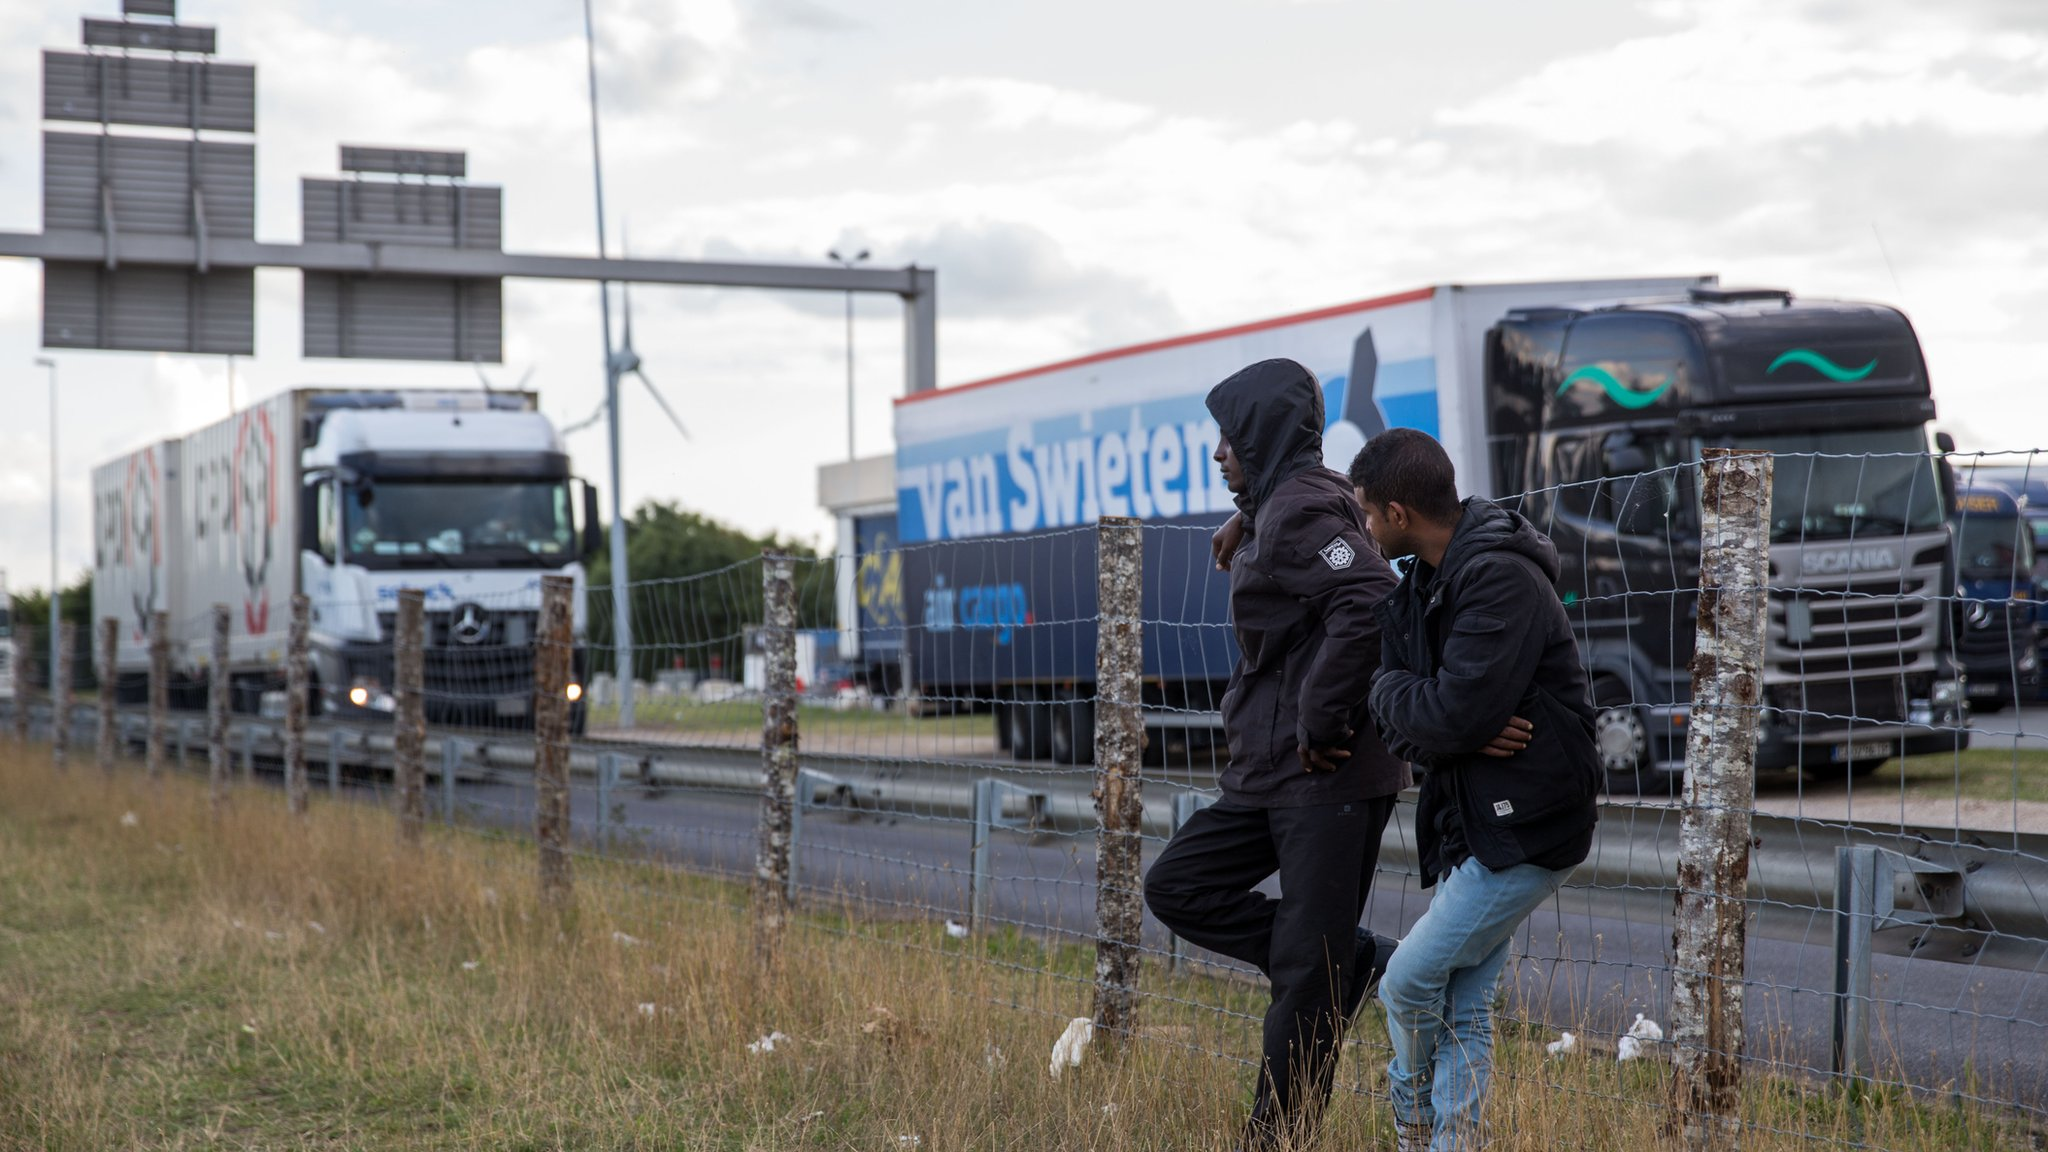 Extra fencing and sniffer dogs are to be offered to Calais to help deal with the migrant crisis, Prime Minister David Cameron says.